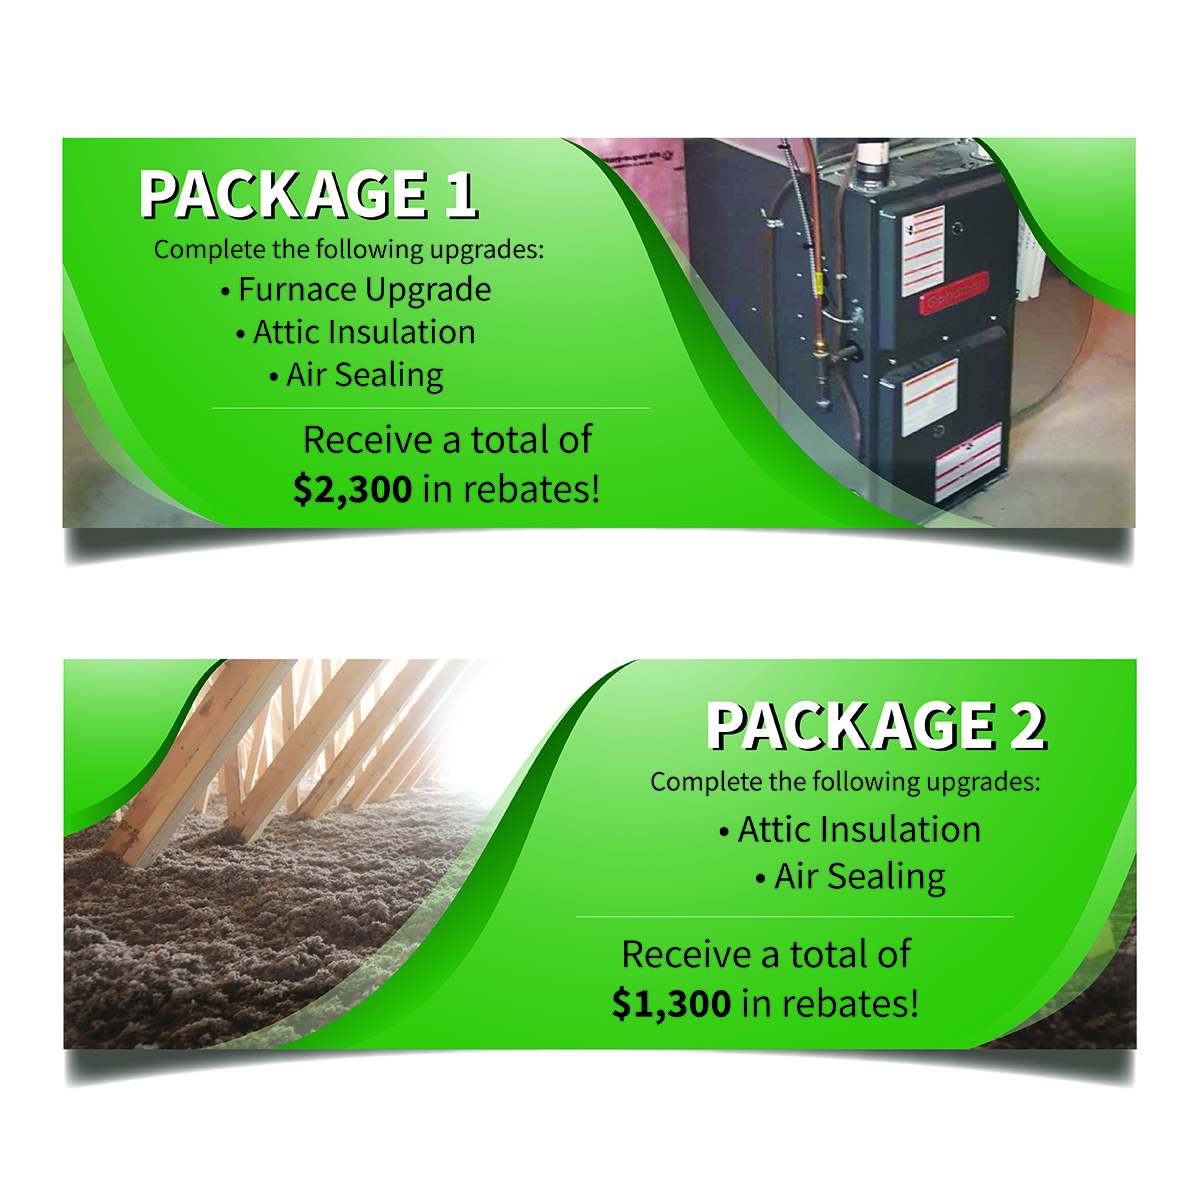 Promo packages from the Home Efficiency Rebate